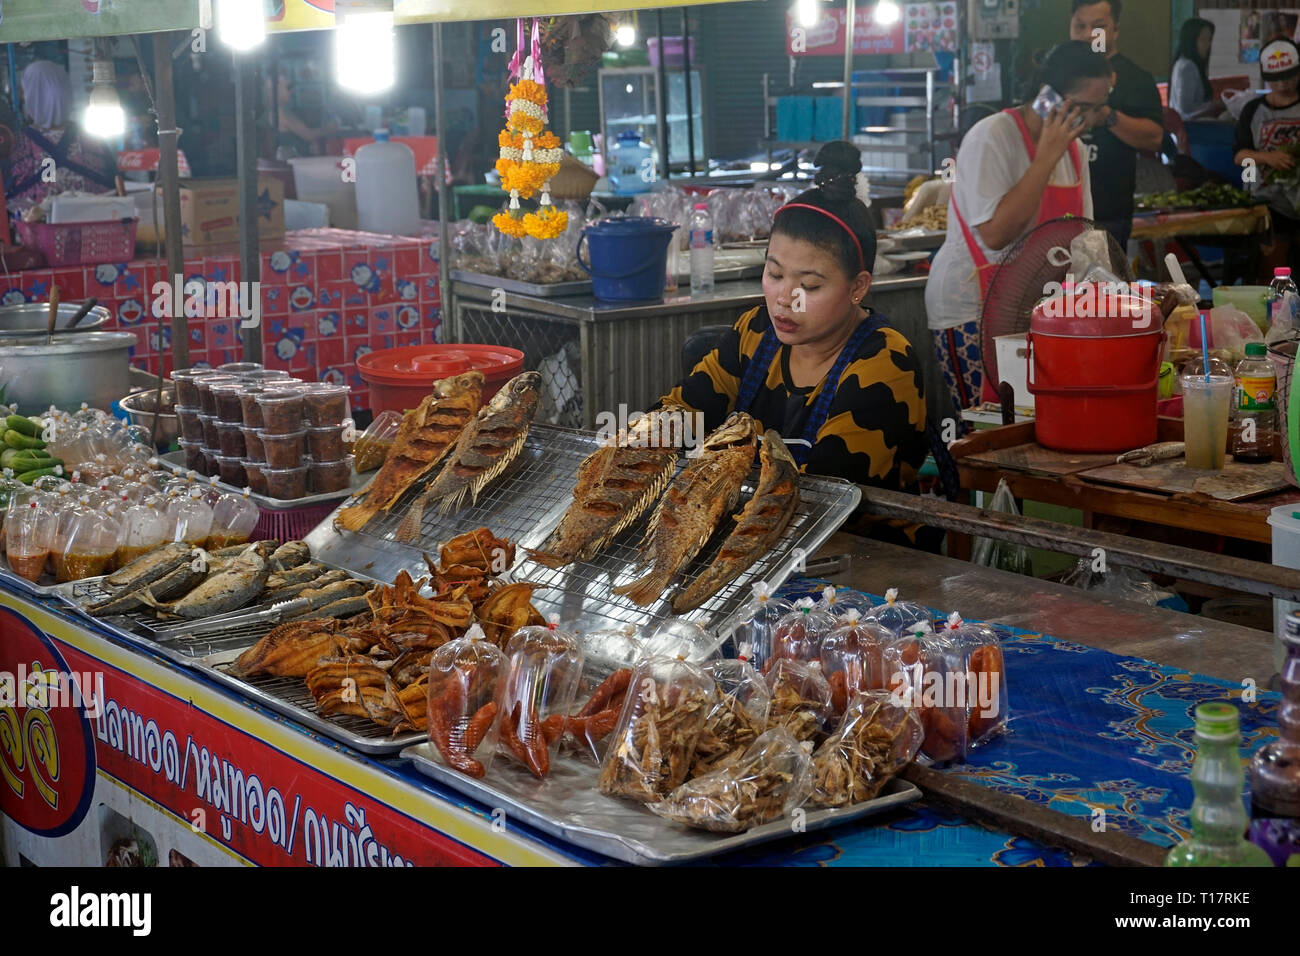 Thai woman sells fresh cooked food at Lamai market, Lamai center, Koh Samui, Surat Thani, Gulf of Thailand, Thailand - Stock Image